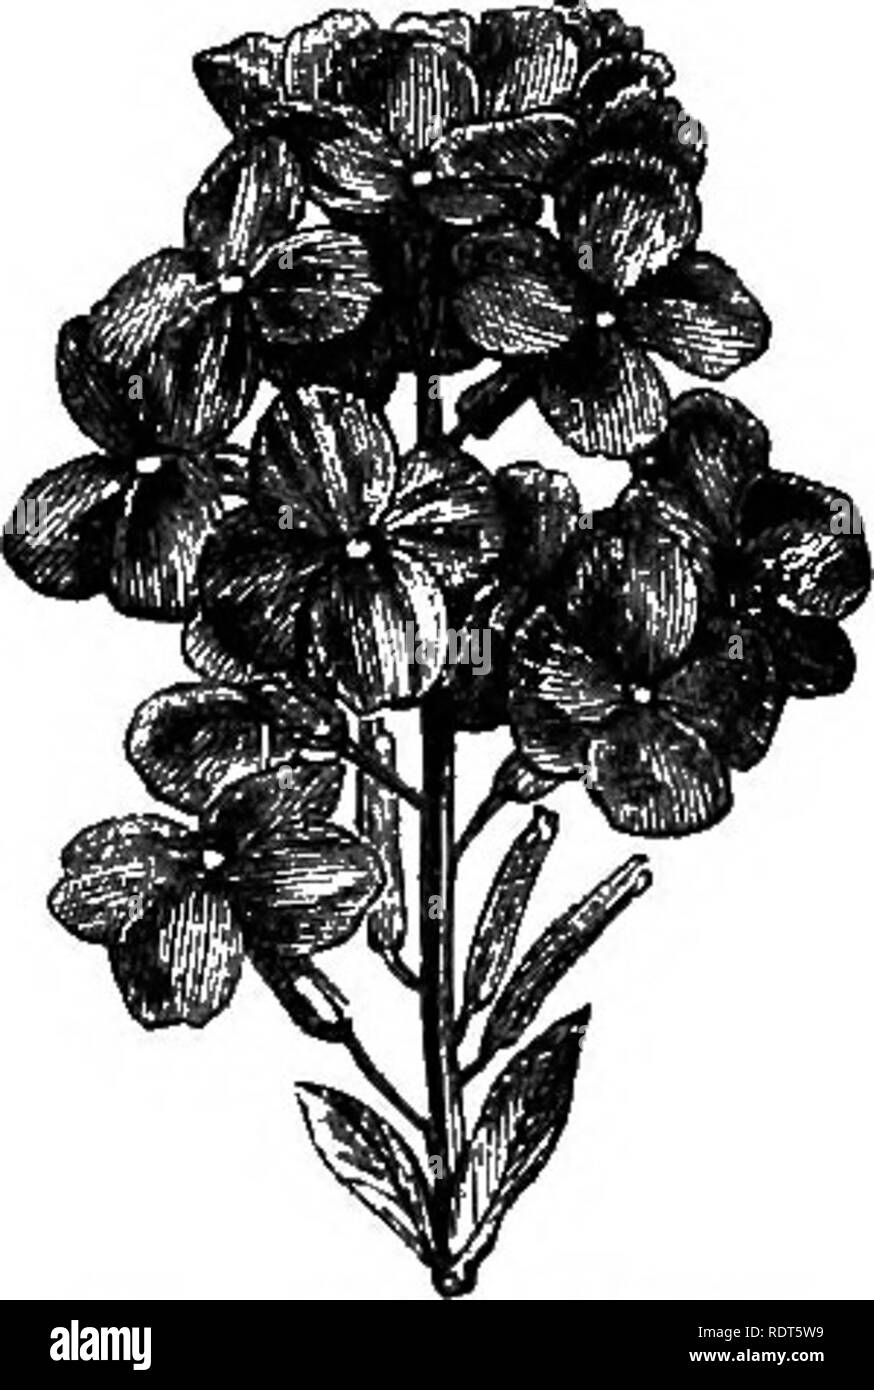 . My garden, its plan and culture together with a general description of its geology, botany, and natural history. Gardening. Fig. 43S.—Christmas Rose. Fig. 436.—Wallflower. Fig. 434.—Lupin. One of the most valuable winter-blooming flowers is the Christmas Rose {Helleborus niger, fig. 435), affording large white flowers when other.blossoms do not exist. I have had much trouble in growing this plant, although it attains to the highest perfection a few hundred yards from my garden, and about twenty or thirty feet higher up the hill. My plants now, however, look well, as I secured strong vigorous Stock Photo